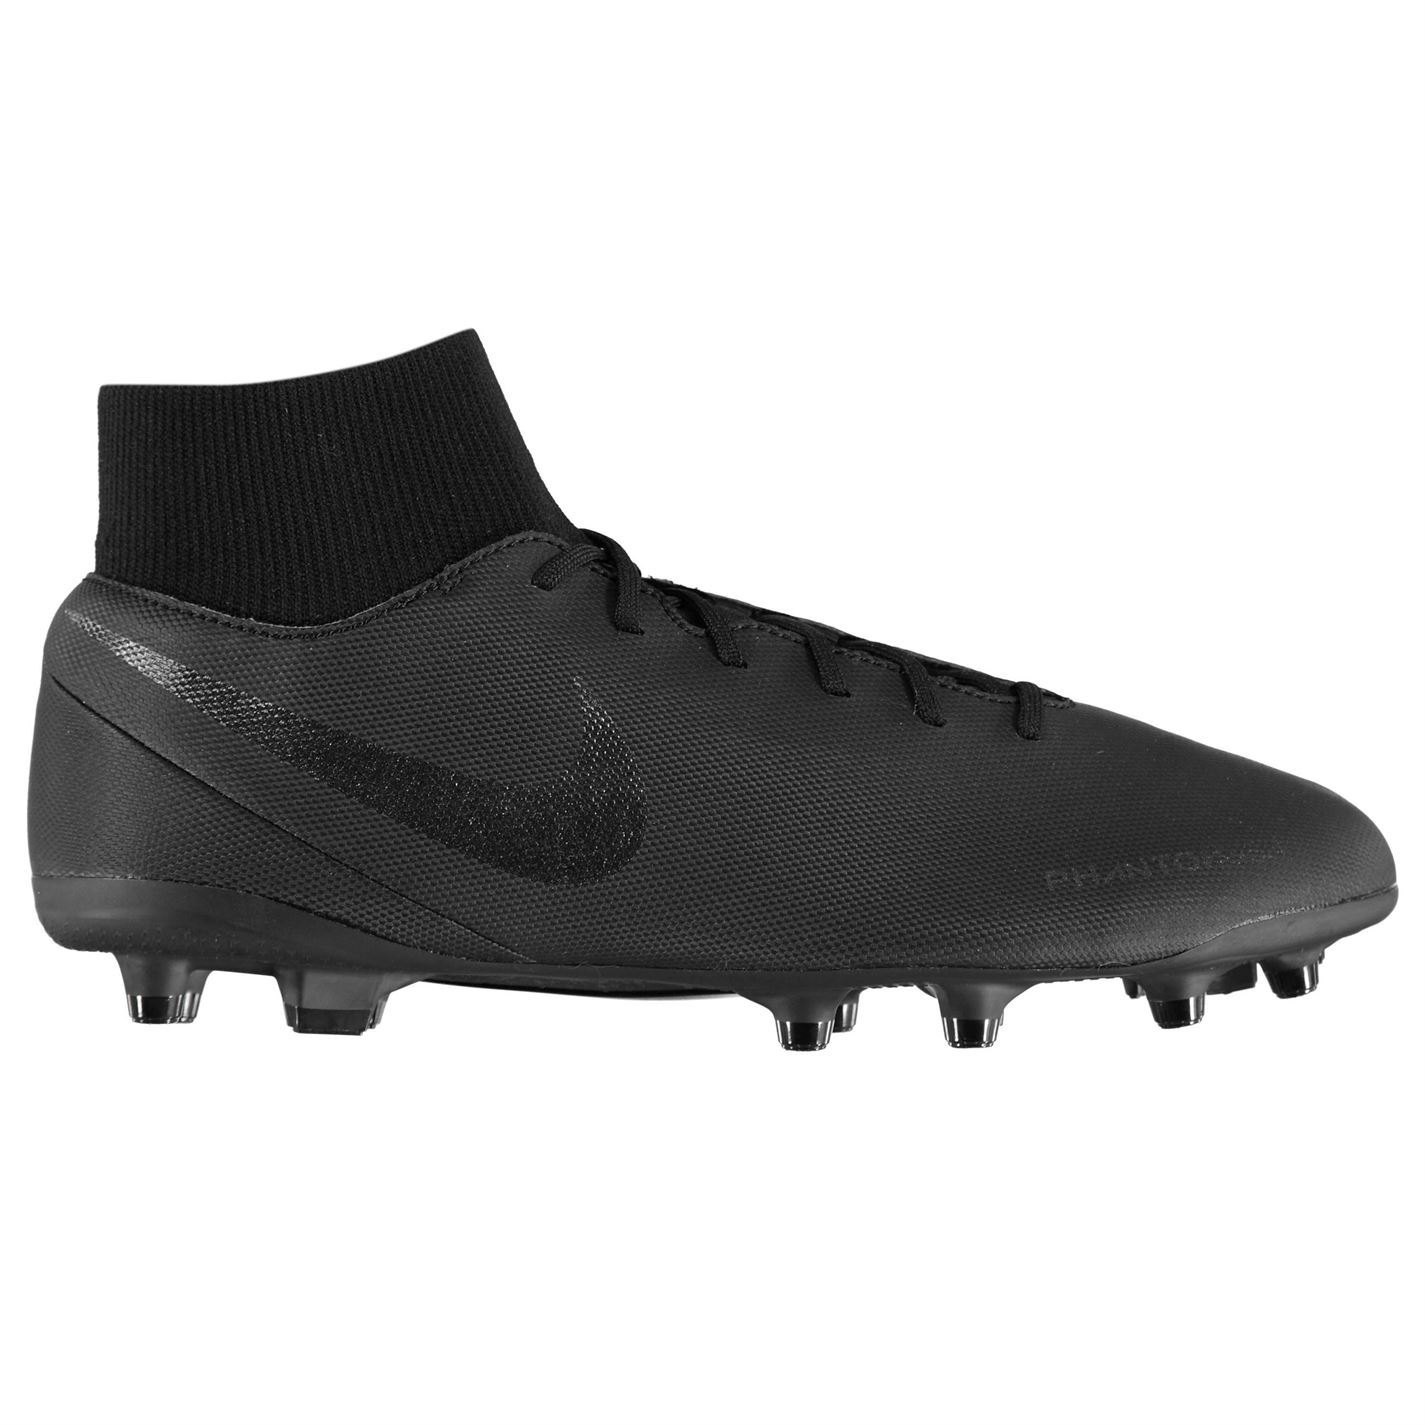 factory price 12d9b bb083 Details about Nike Phantom Vision Club DF Firm Ground Football Boots Mens  Soccer Shoes Cleats